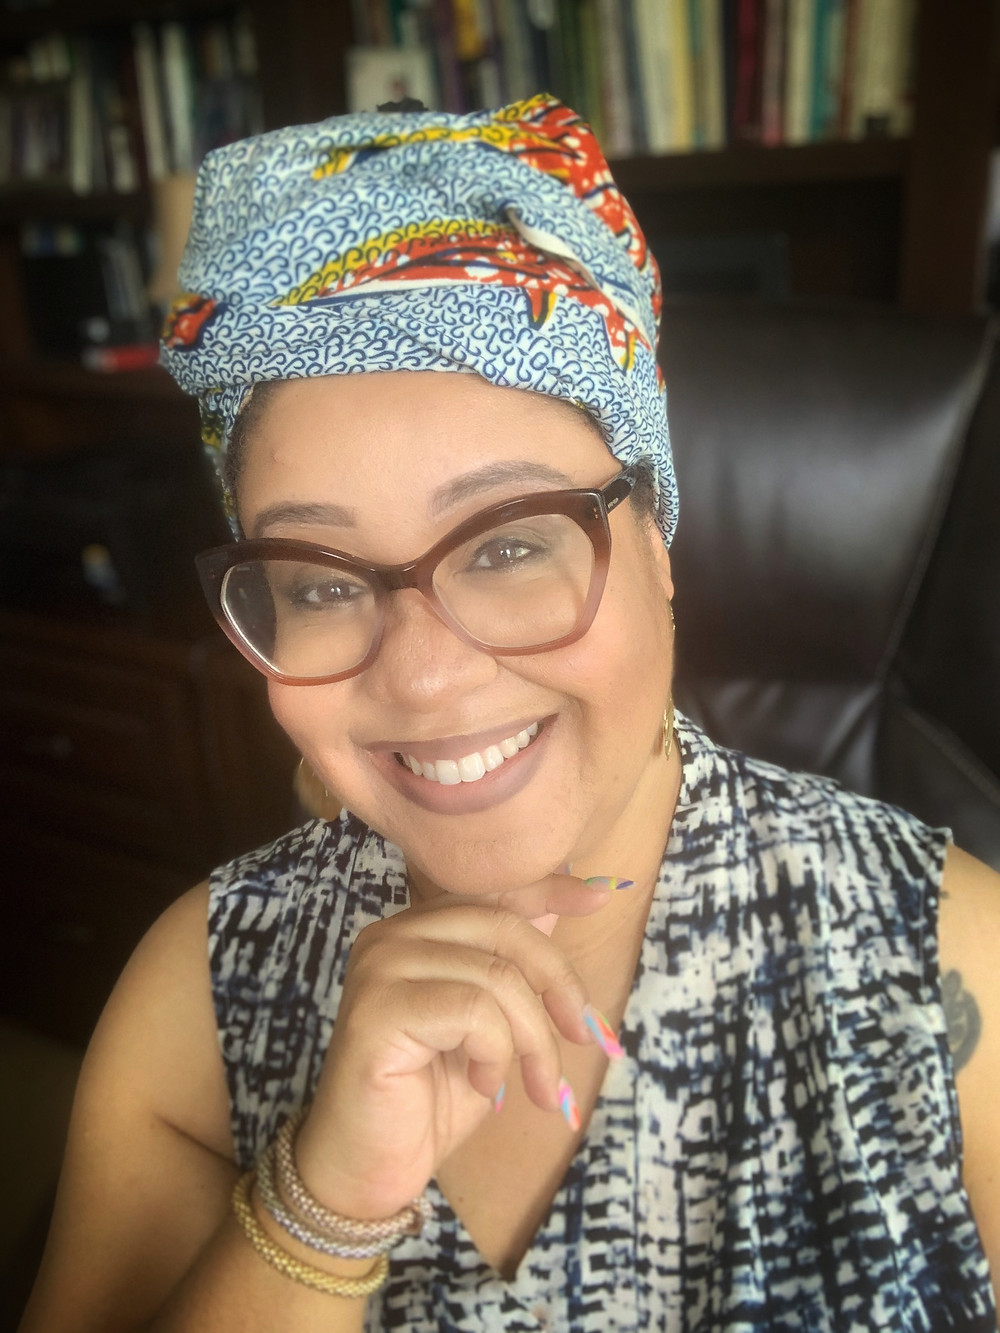 A black woman in a head wrap smiling at the camera.